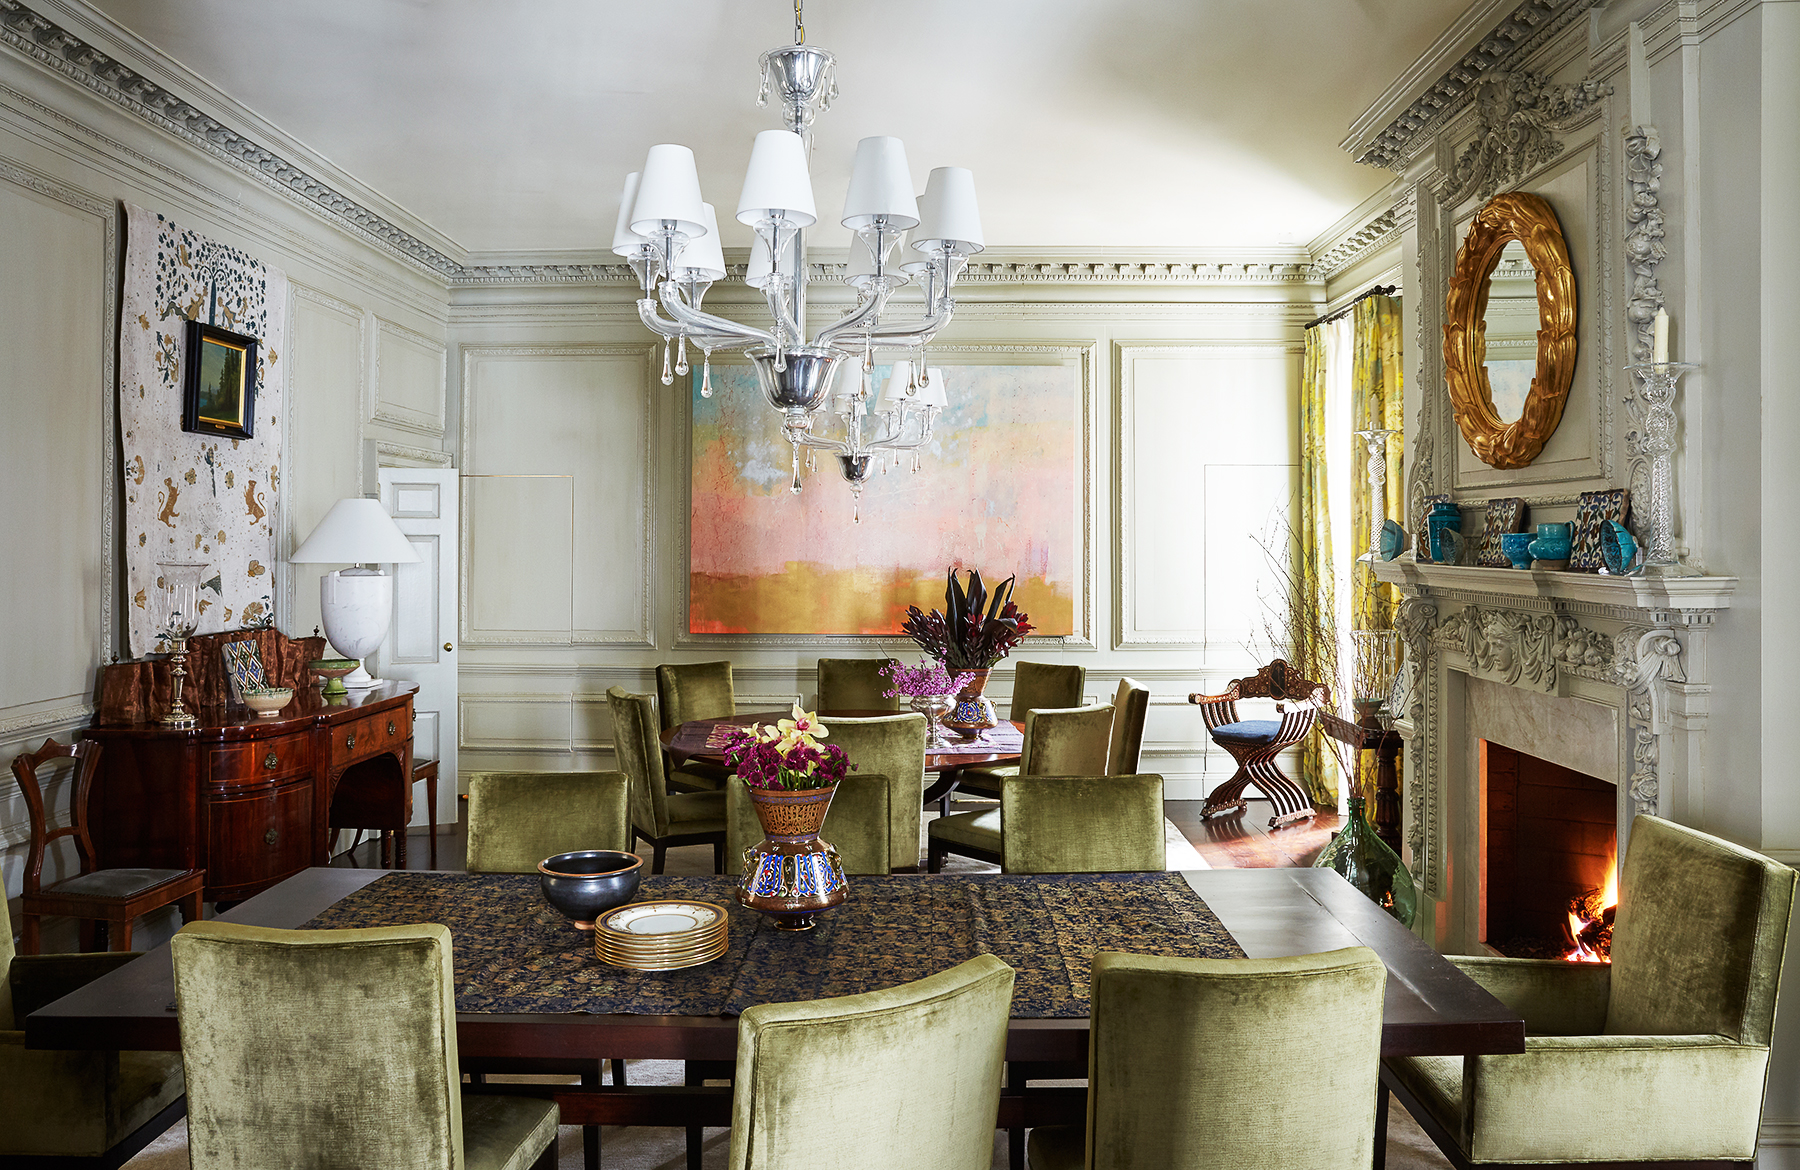 Dining Room at a Washington D.C. Residence Designed by Mona Hajj